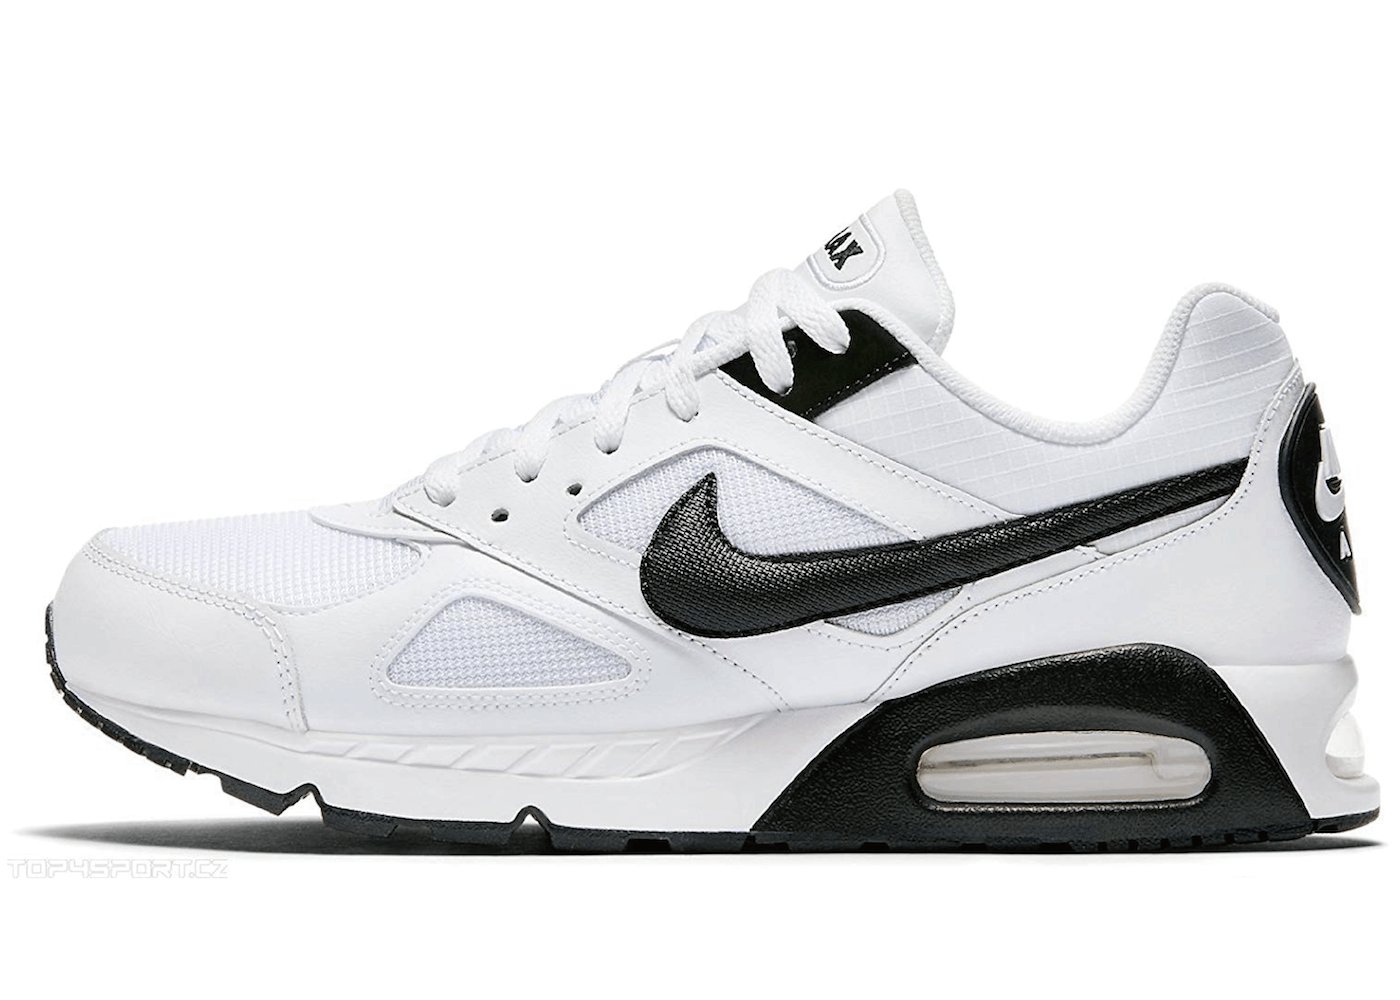 Air Max 1 Jewel White Black (2017)の写真